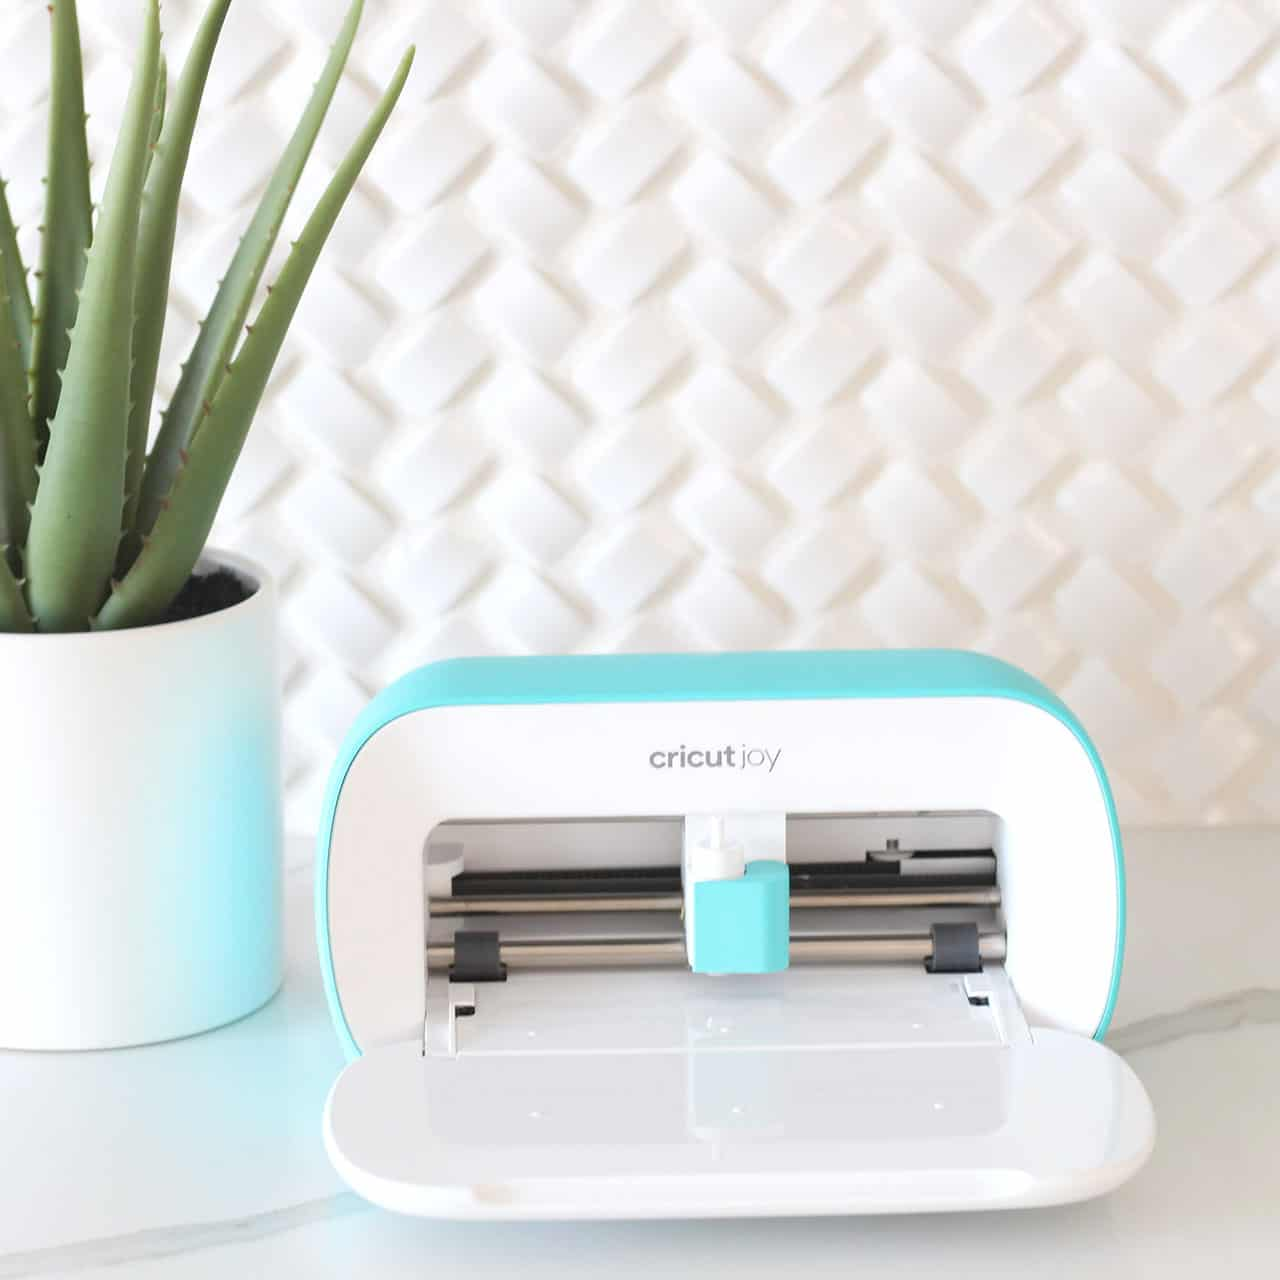 Cricut Joy machine open on white countertop with an aloe plant next to the machine.